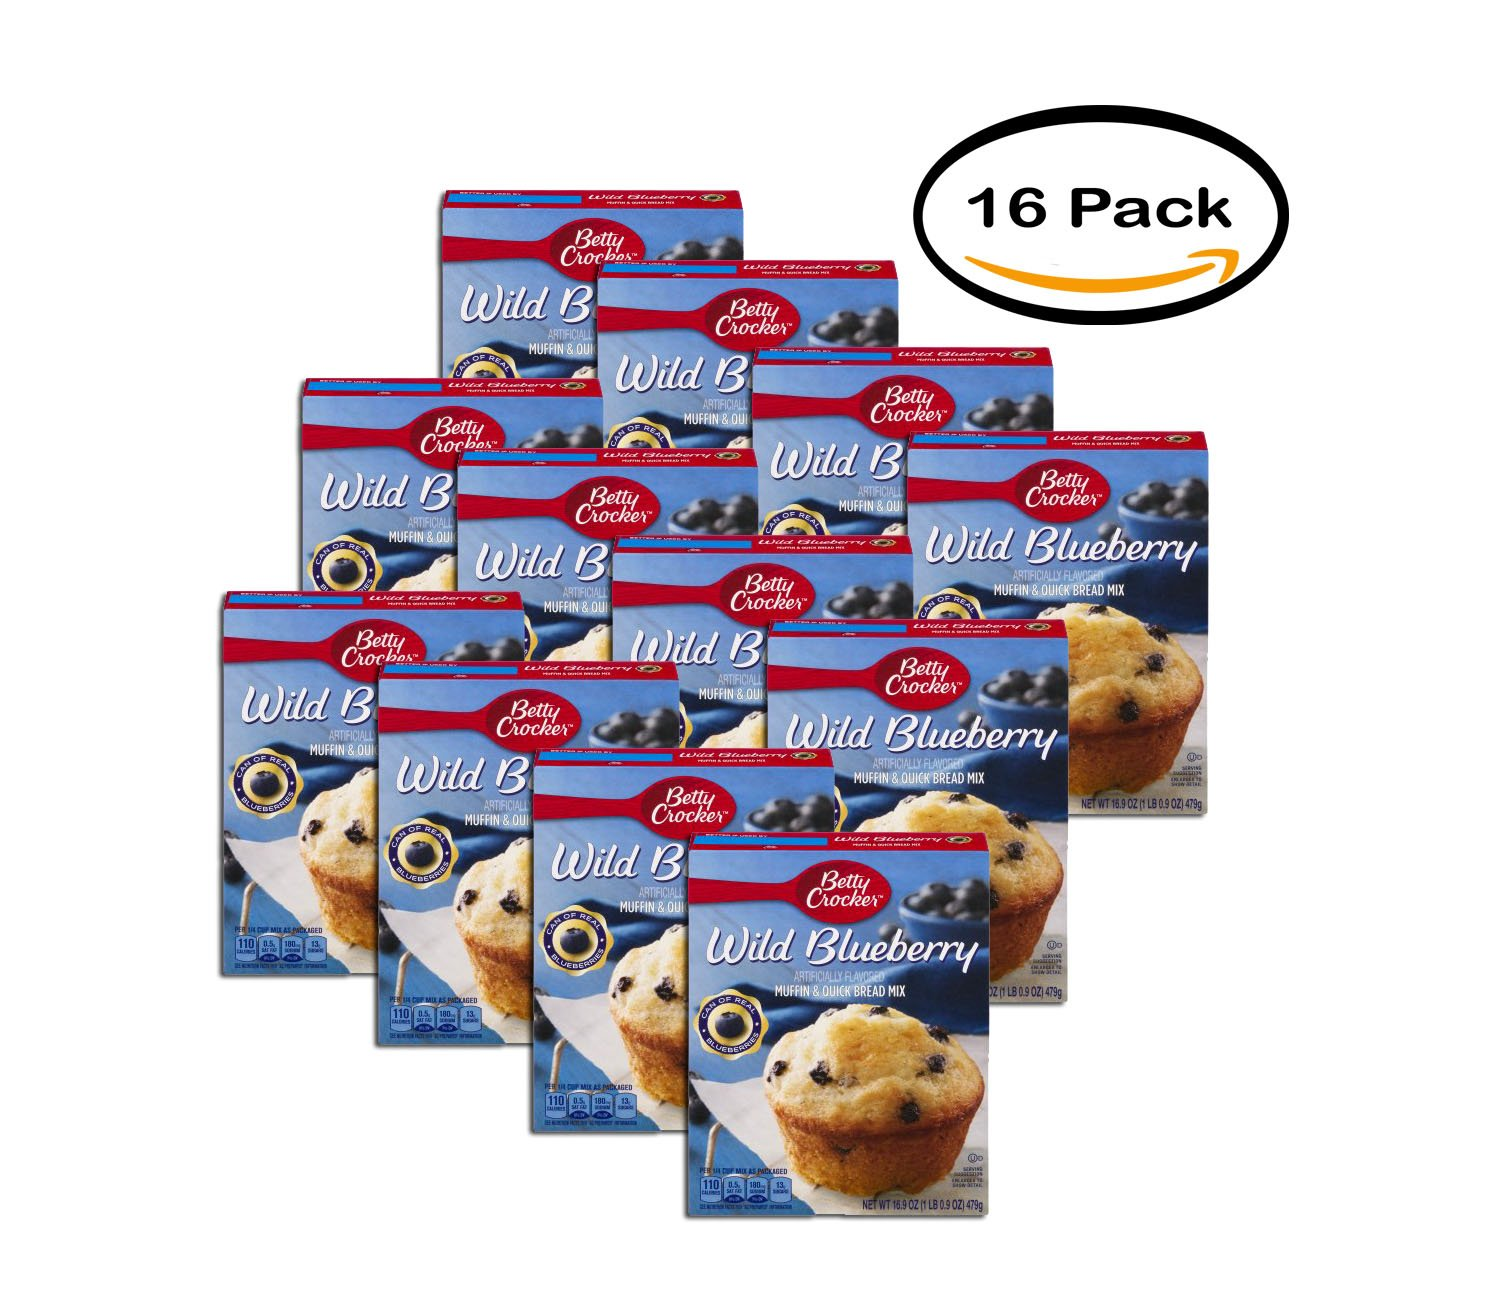 PACK OF 16 - Betty Crocker Muffin & Quick Bread Mix Wild Blueberry 16.9 oz Box, 16.9 OZ